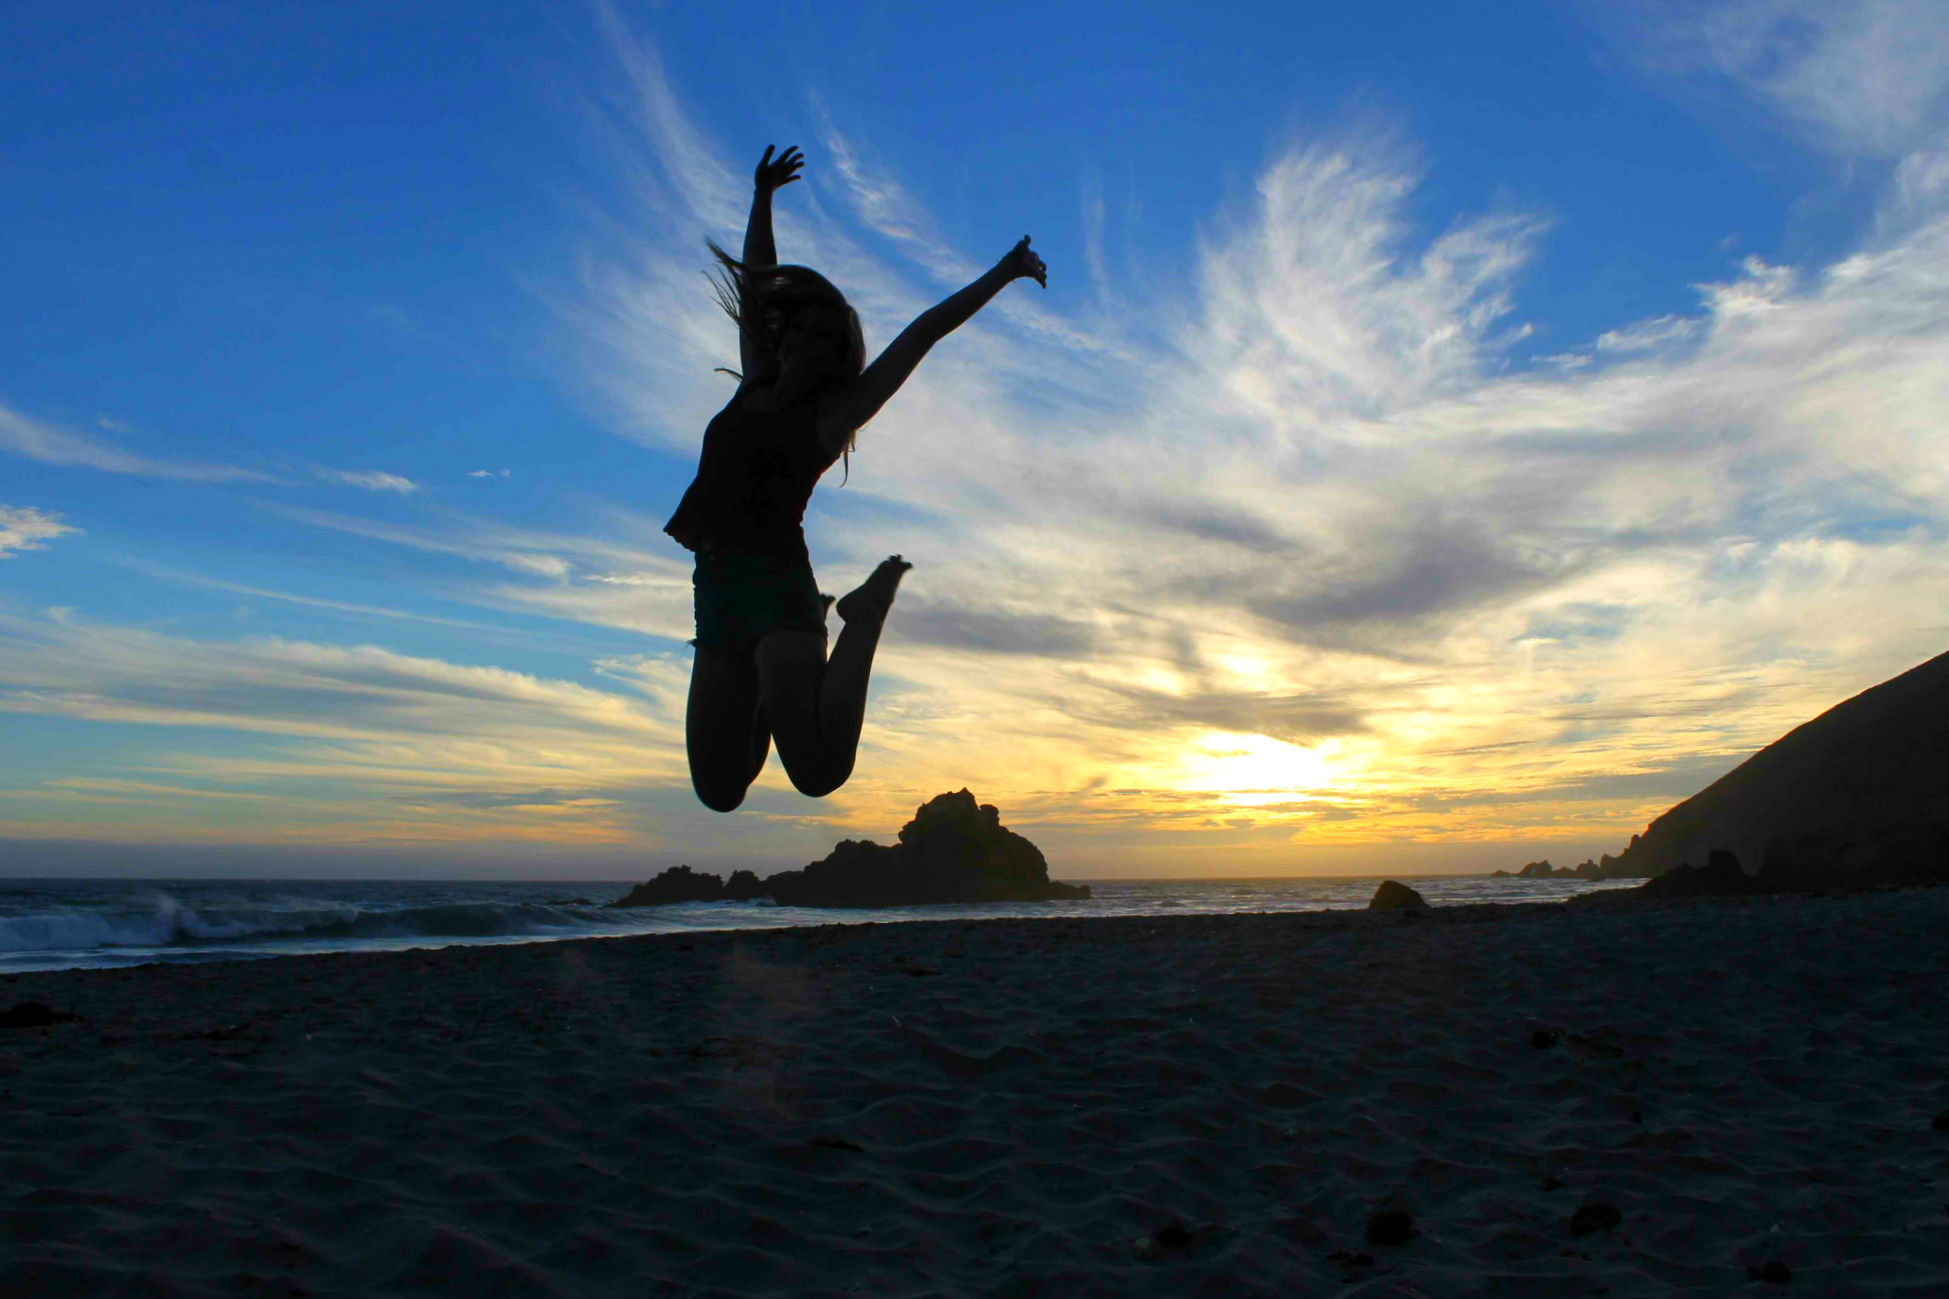 Jumping for joy in Big Sur, California